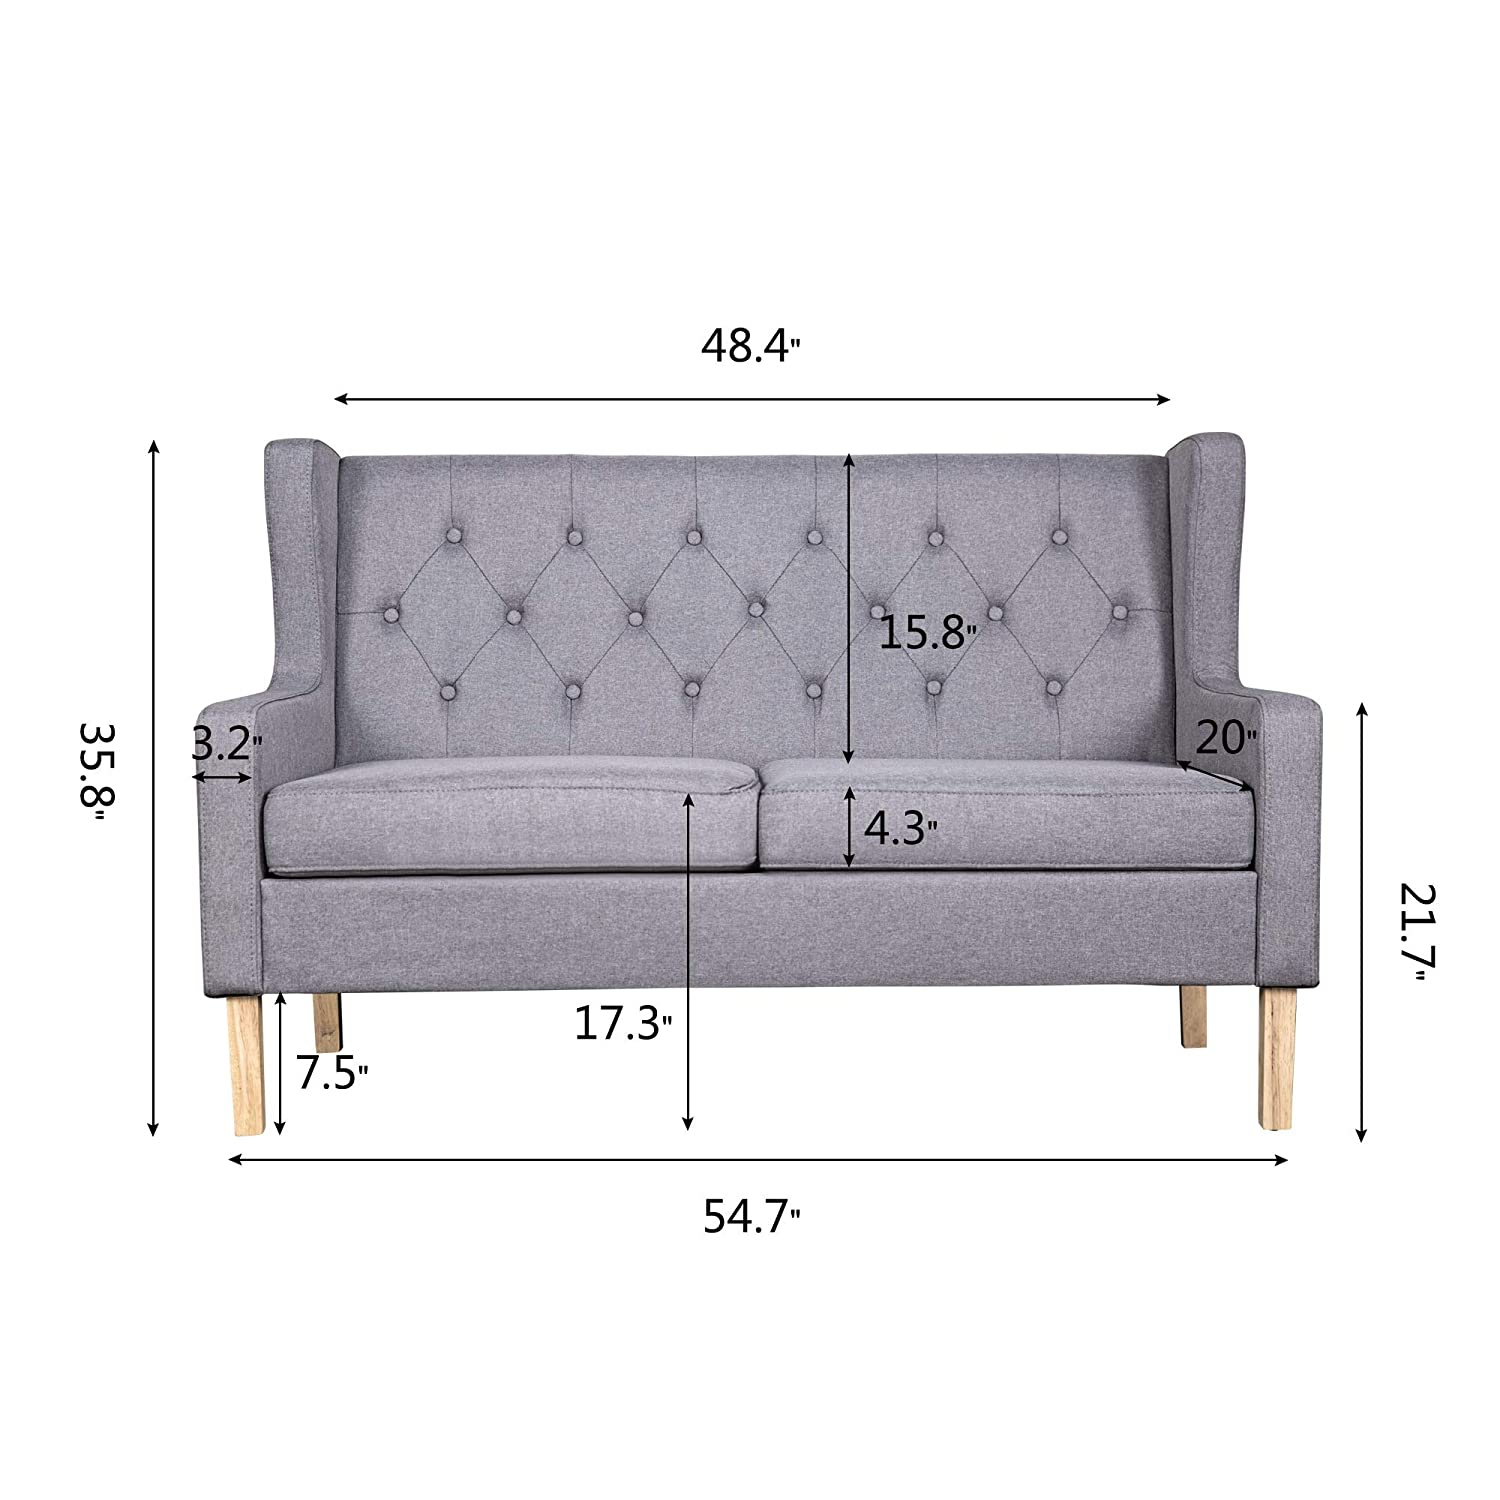 Amazon.com: ROOMANCE Accent Chair Loveseat 2 Seat Sofa ...